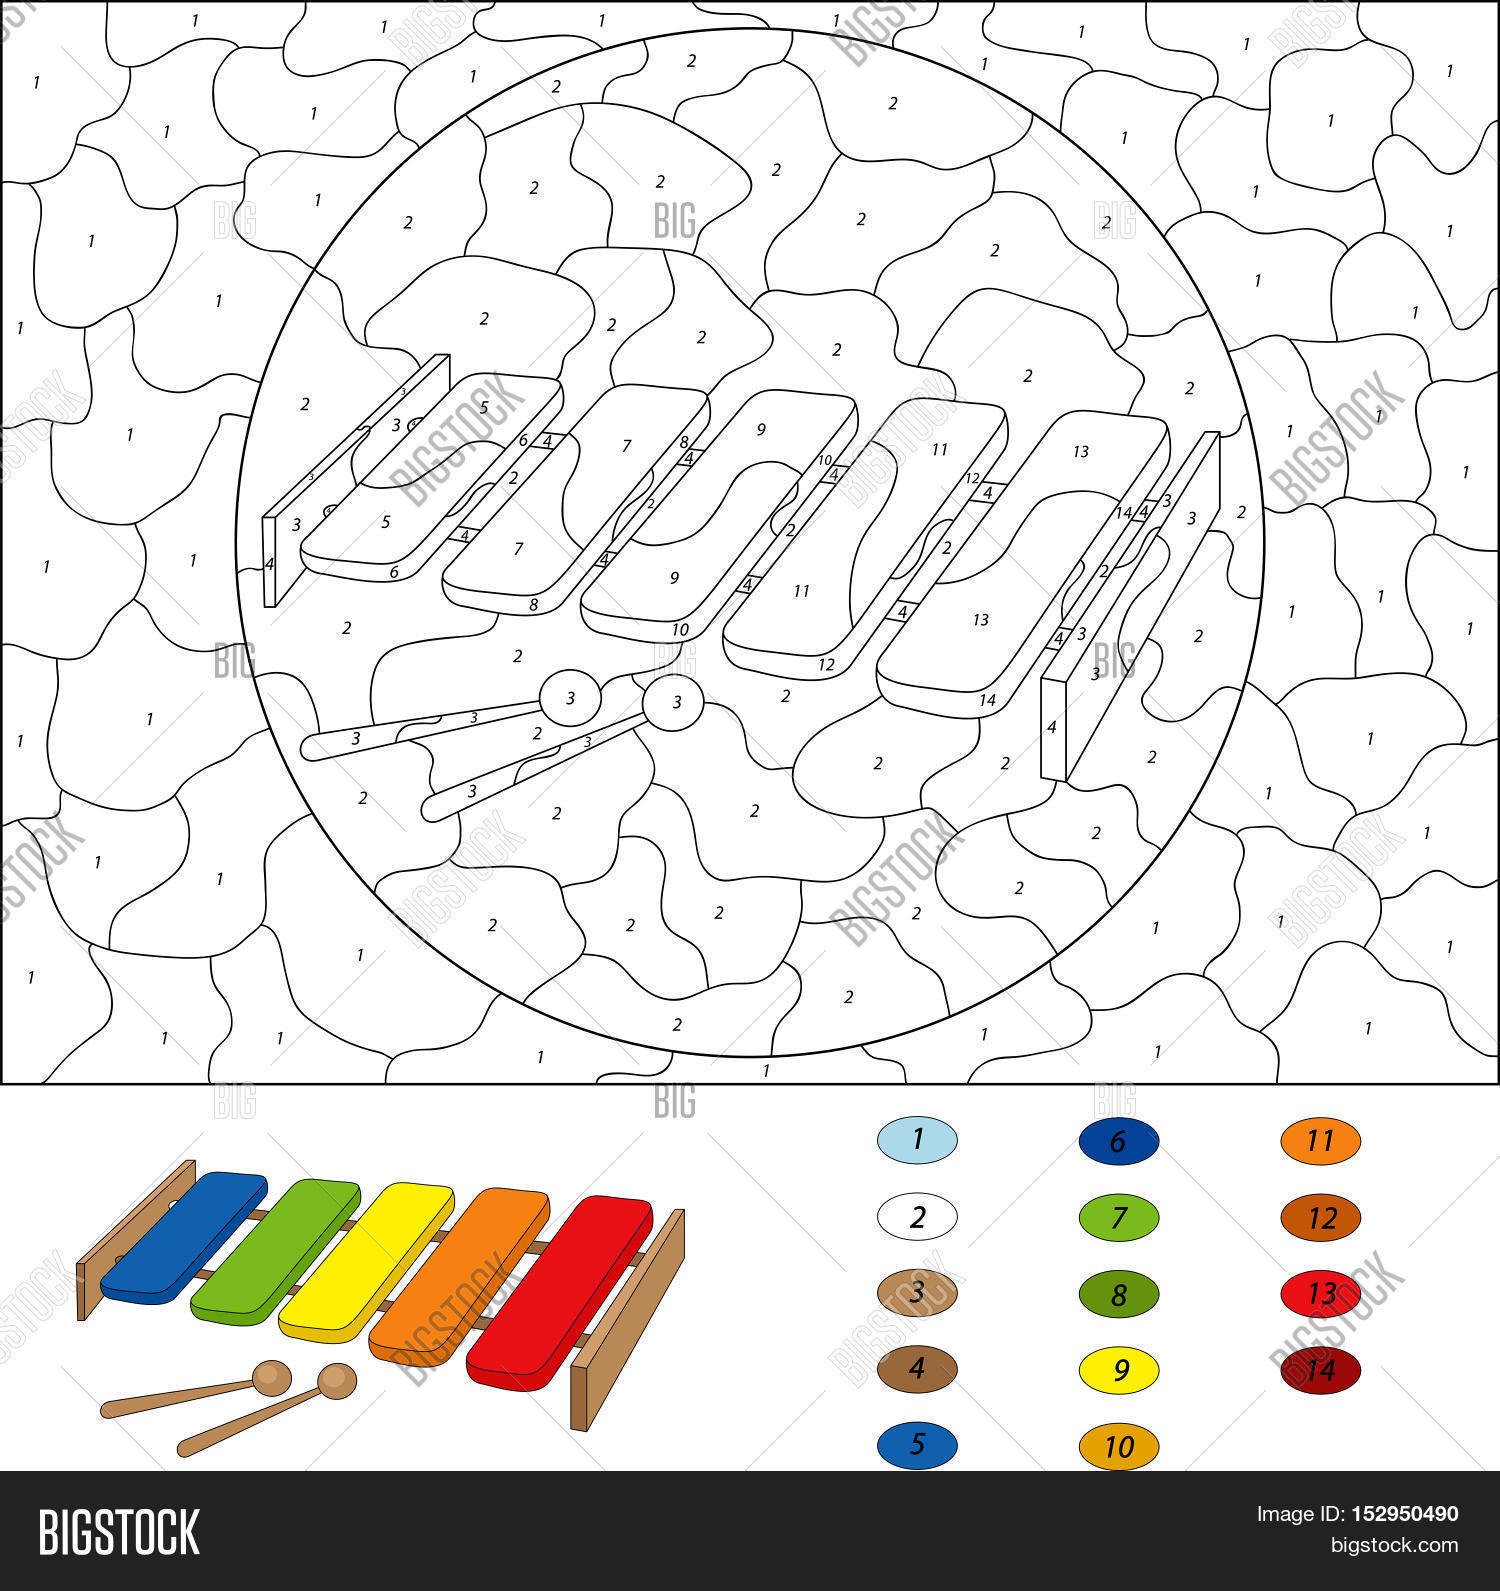 Game color by numbers - Cartoon Xylophone Coloring Book Isolated On White Color By Number Educational Game For Kids